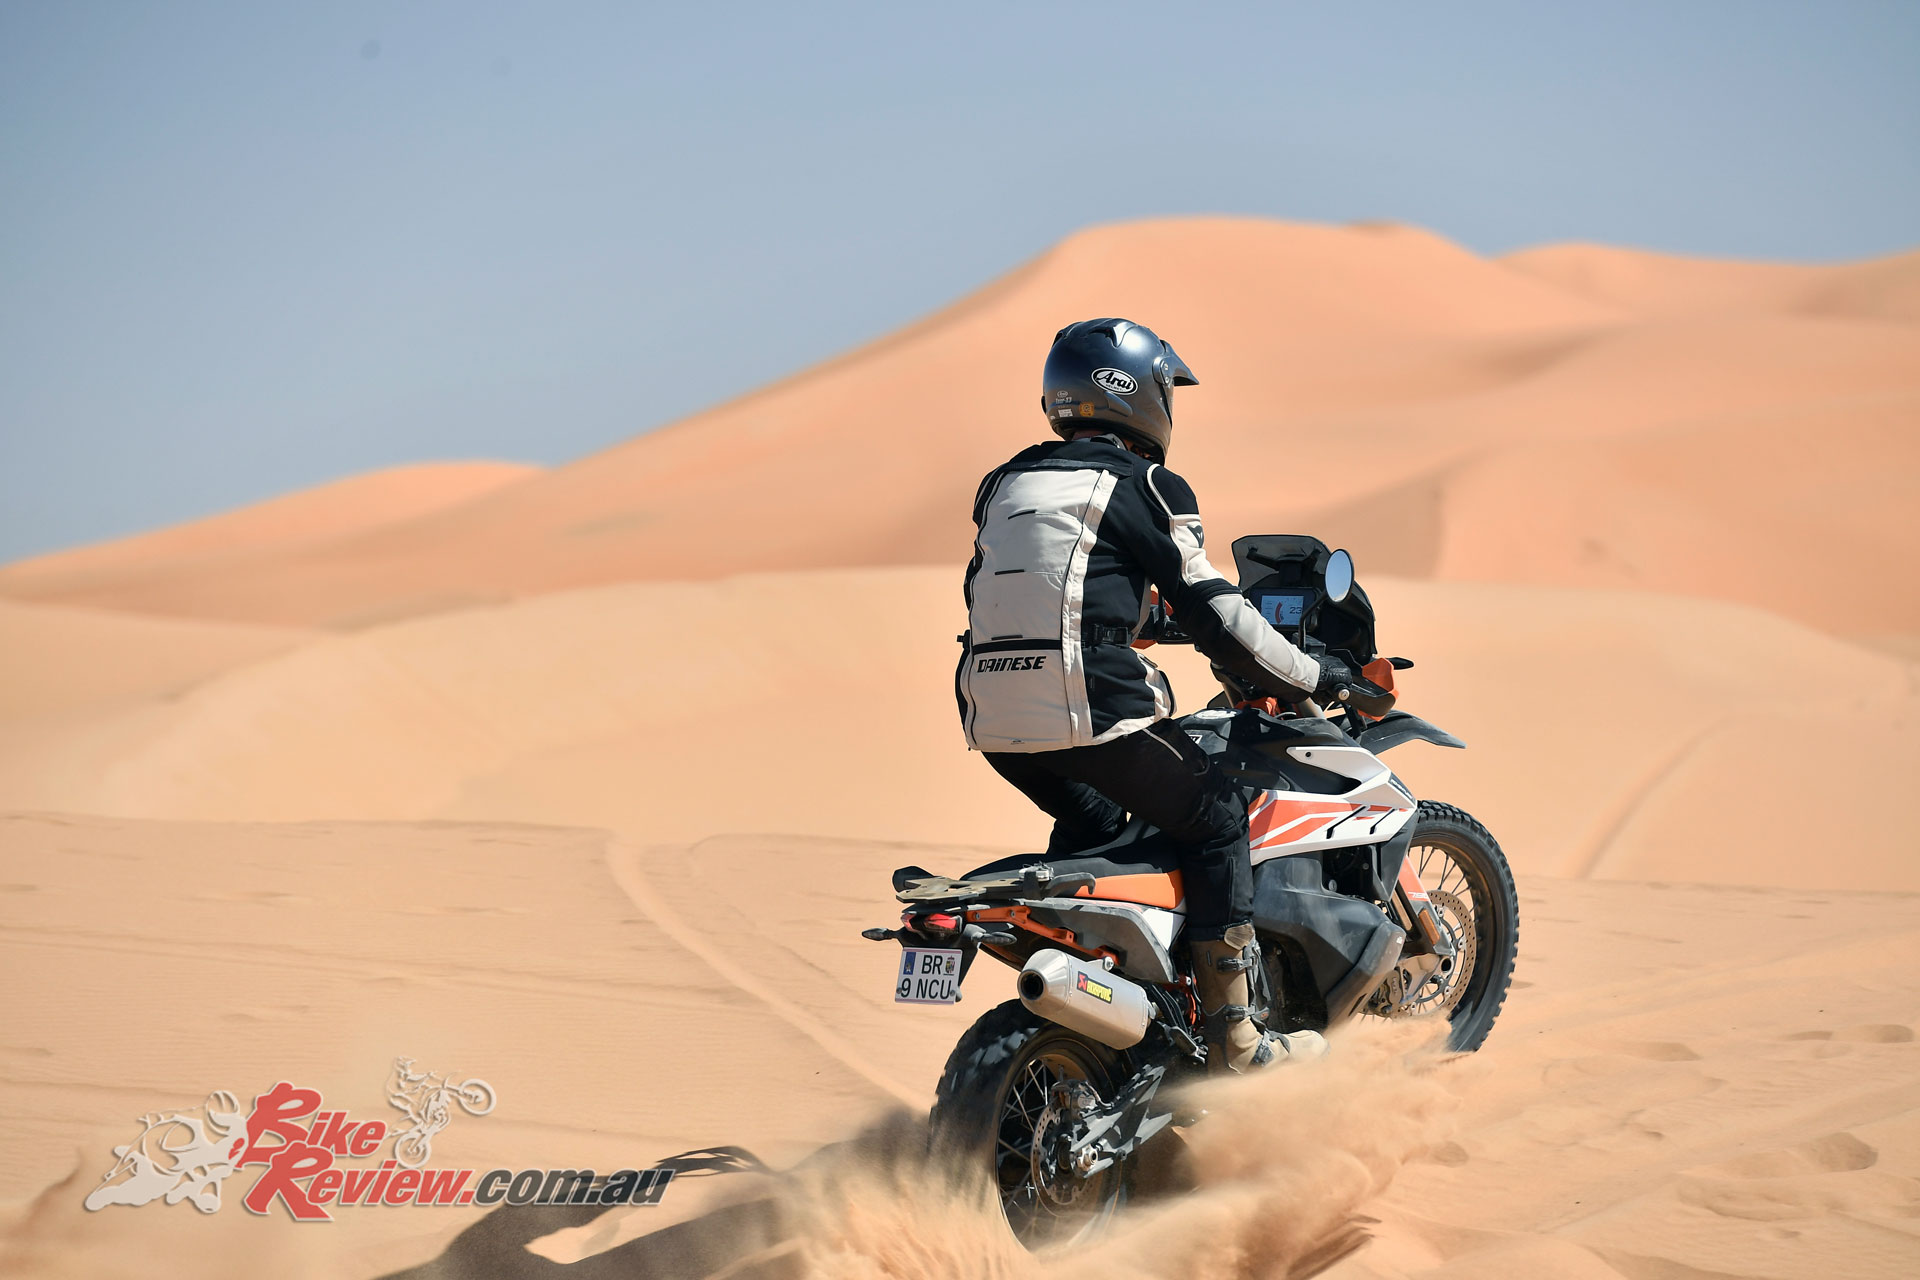 Taking the 790 Adventure R into the dunes in Morocco gives you an idea of how serious KTM are about this model